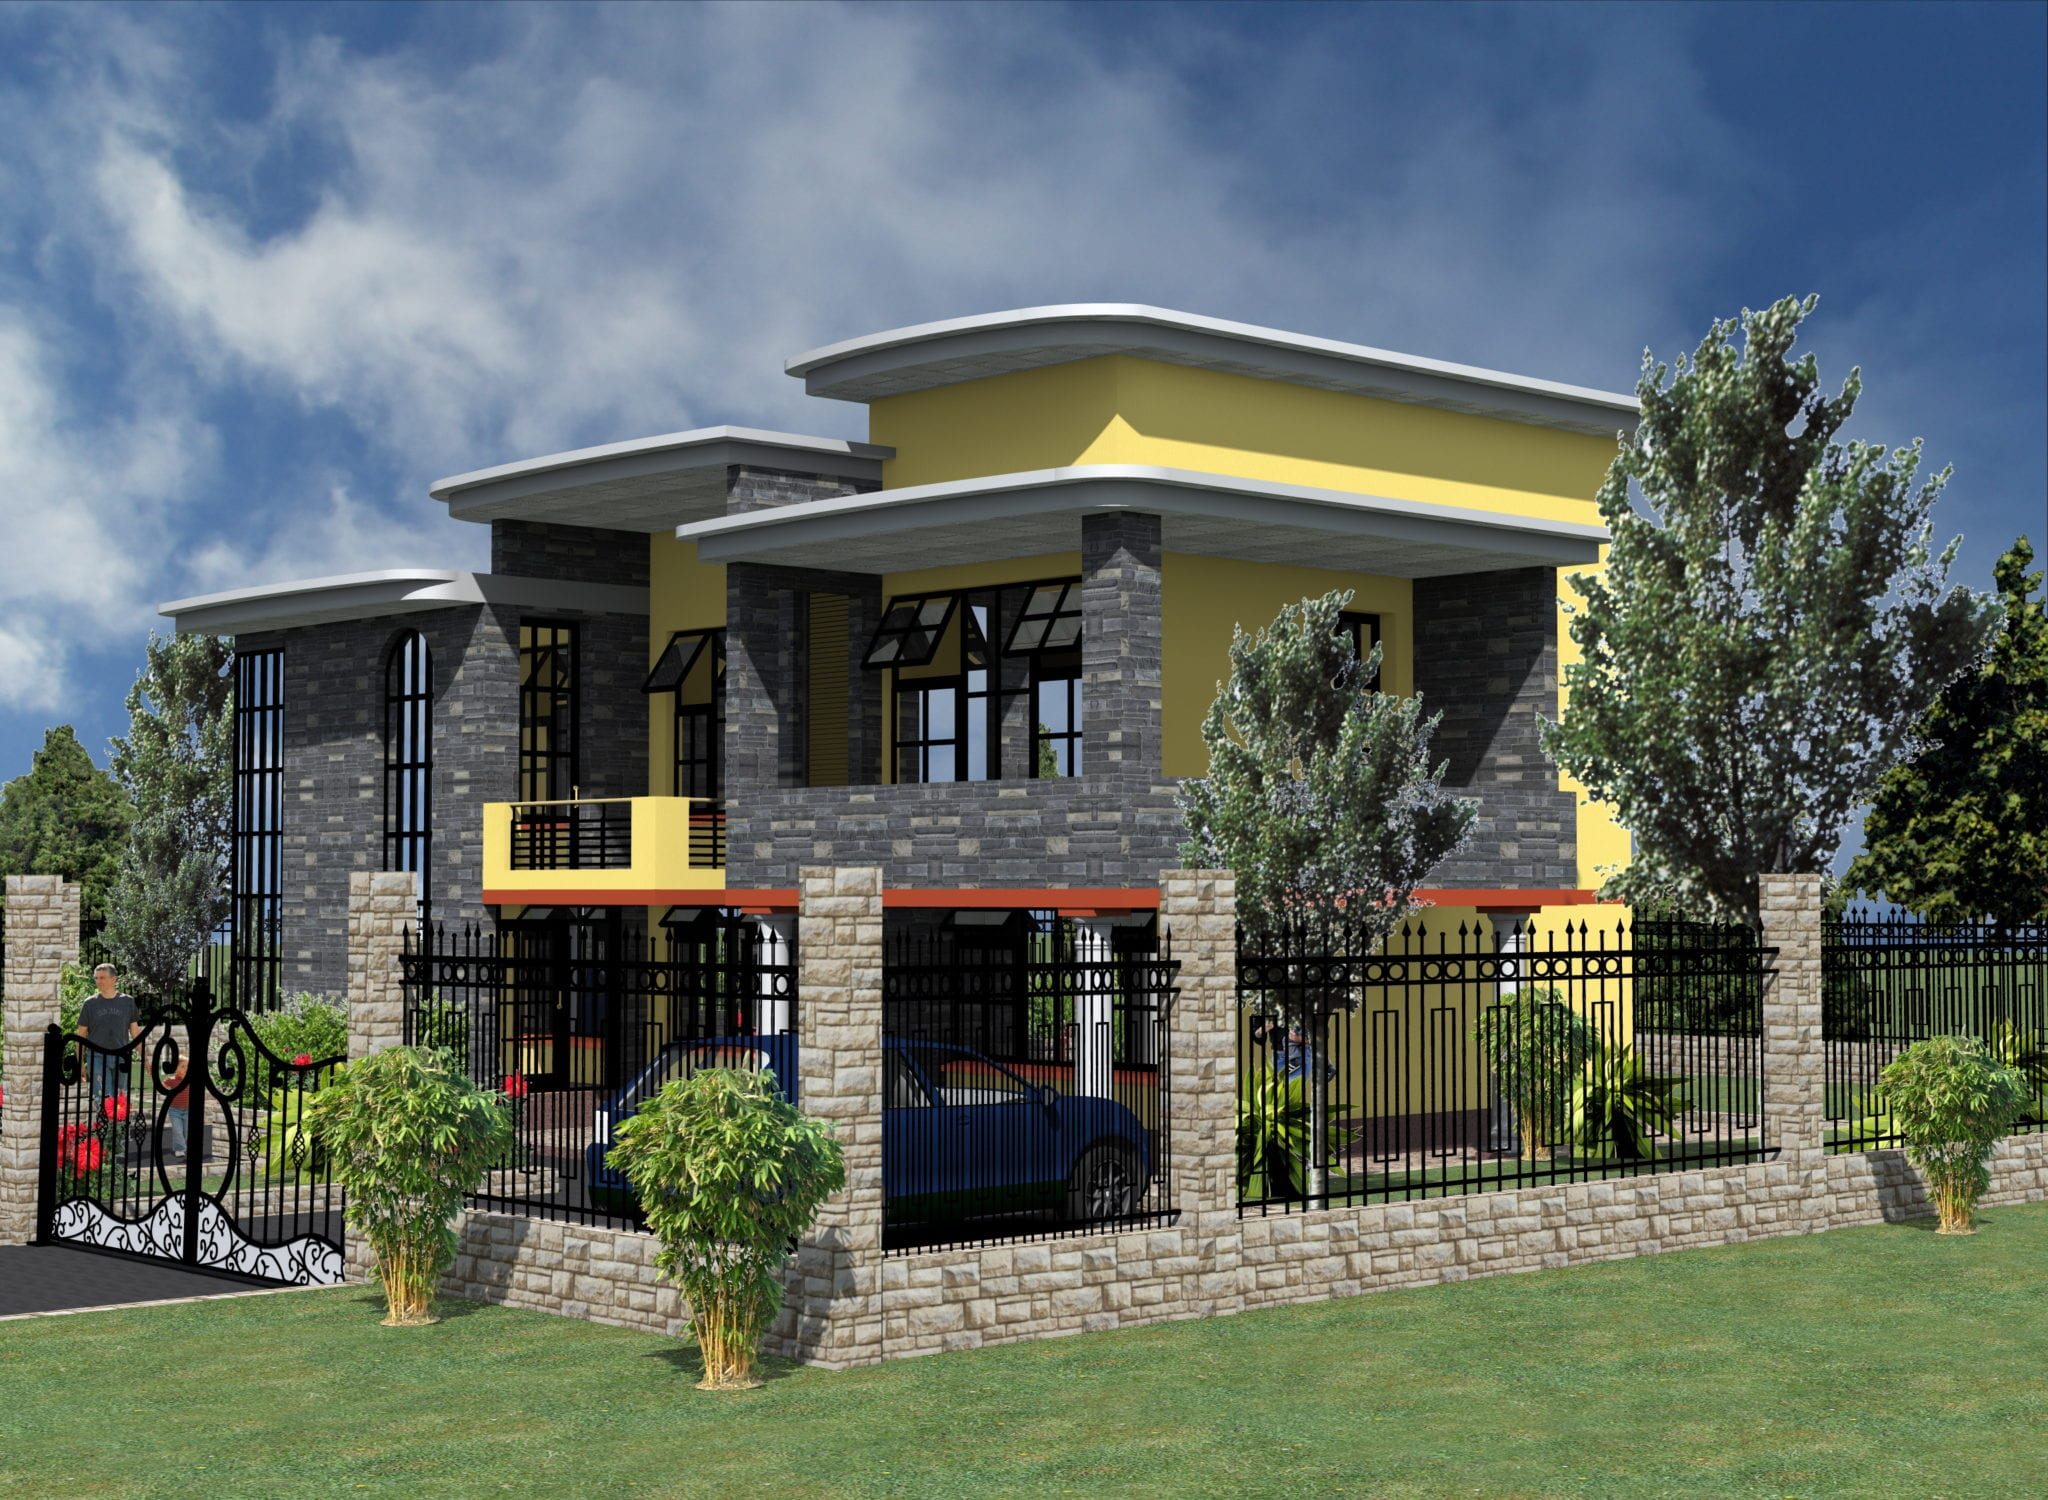 5 Bedroom Modern House Plans With Pictures Hpd Consult,2 Chandelier Over Dining Table